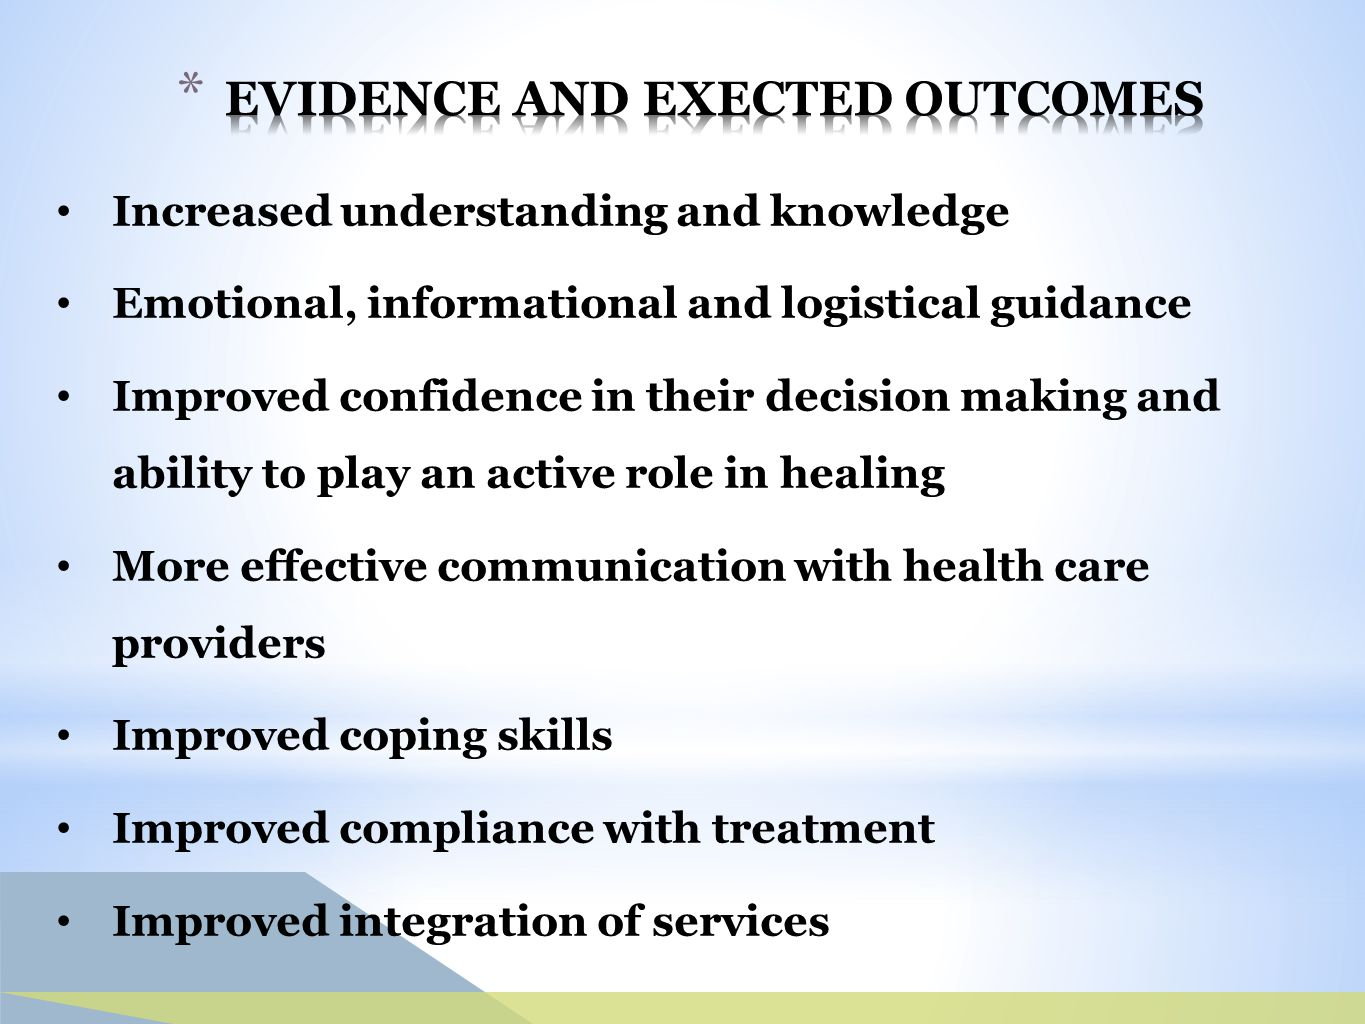 Increased understanding and knowledge Emotional, informational and logistical guidance Improved confidence in their decision making and ability to play an active role in healing More effective communication with health care providers Improved coping skills Improved compliance with treatment Improved integration of services